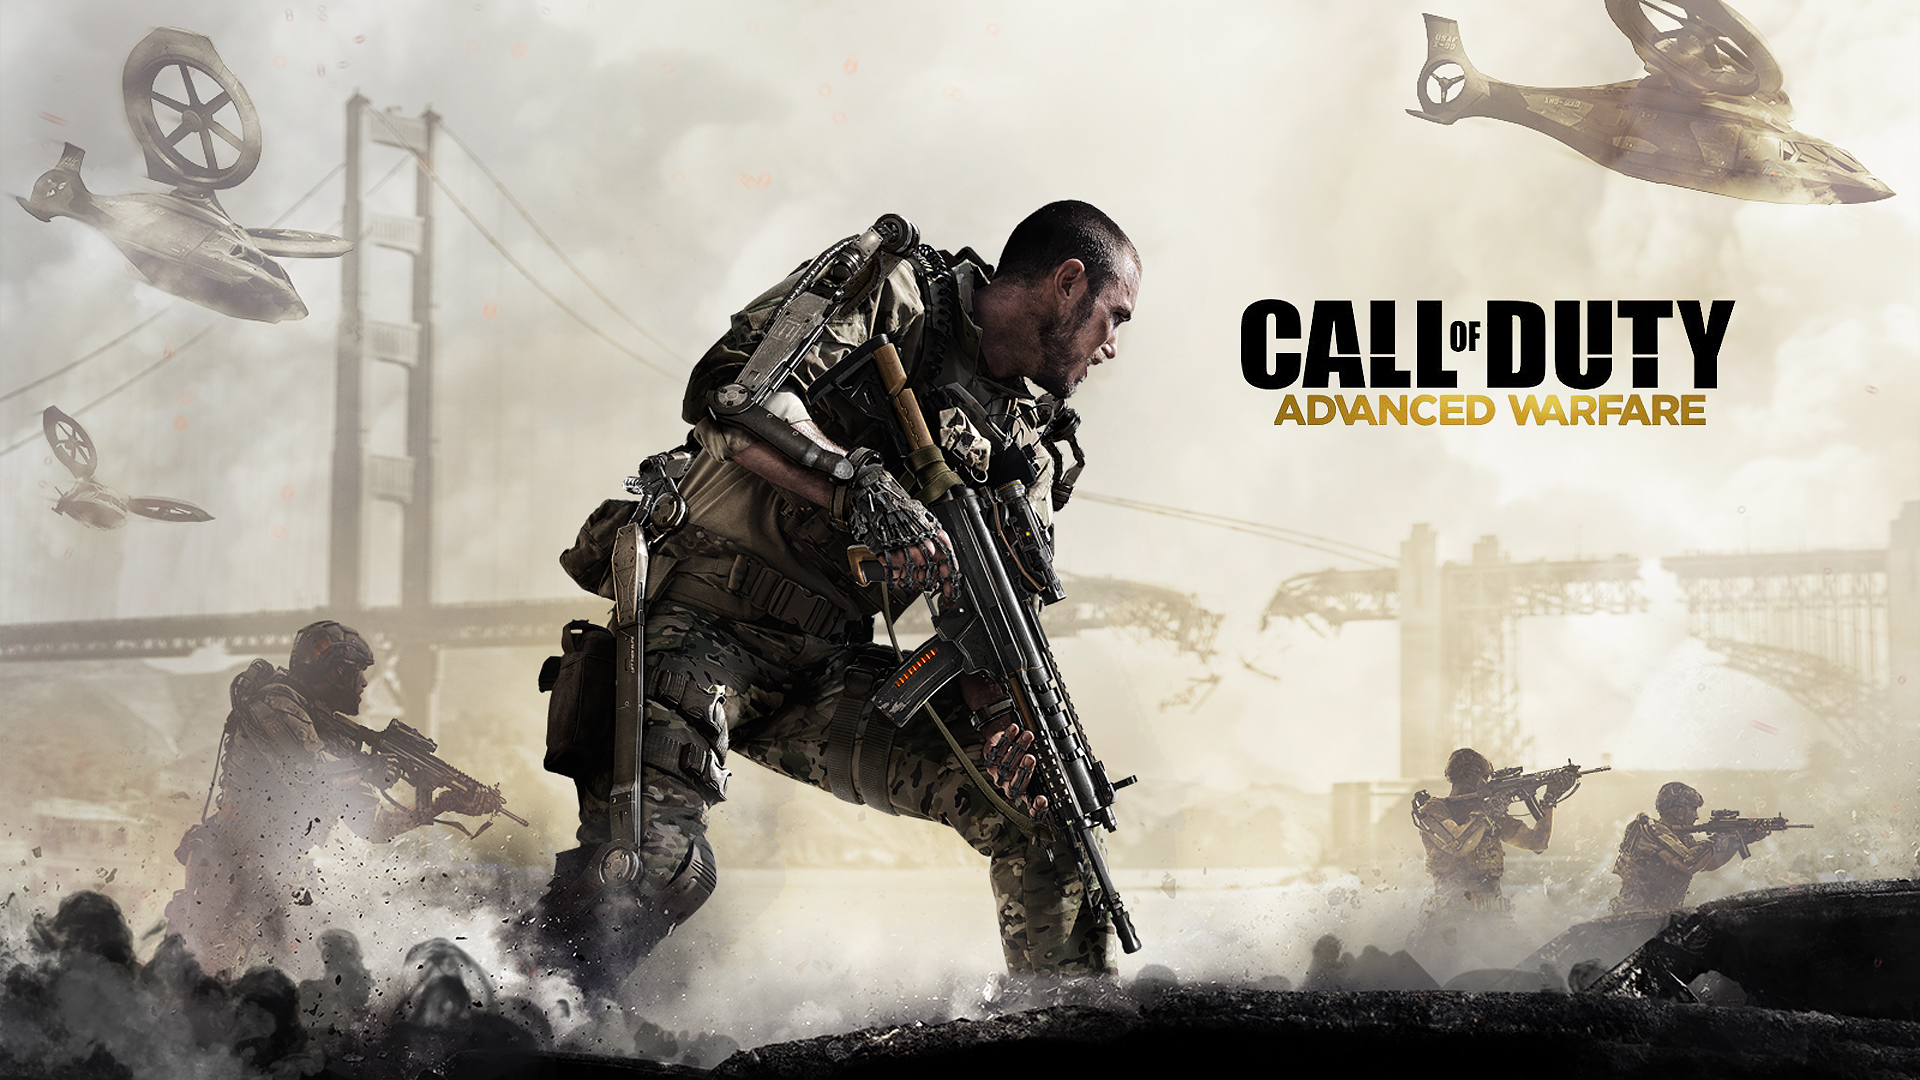 call-of-duty-advanced-warfare-wide-HD-image-